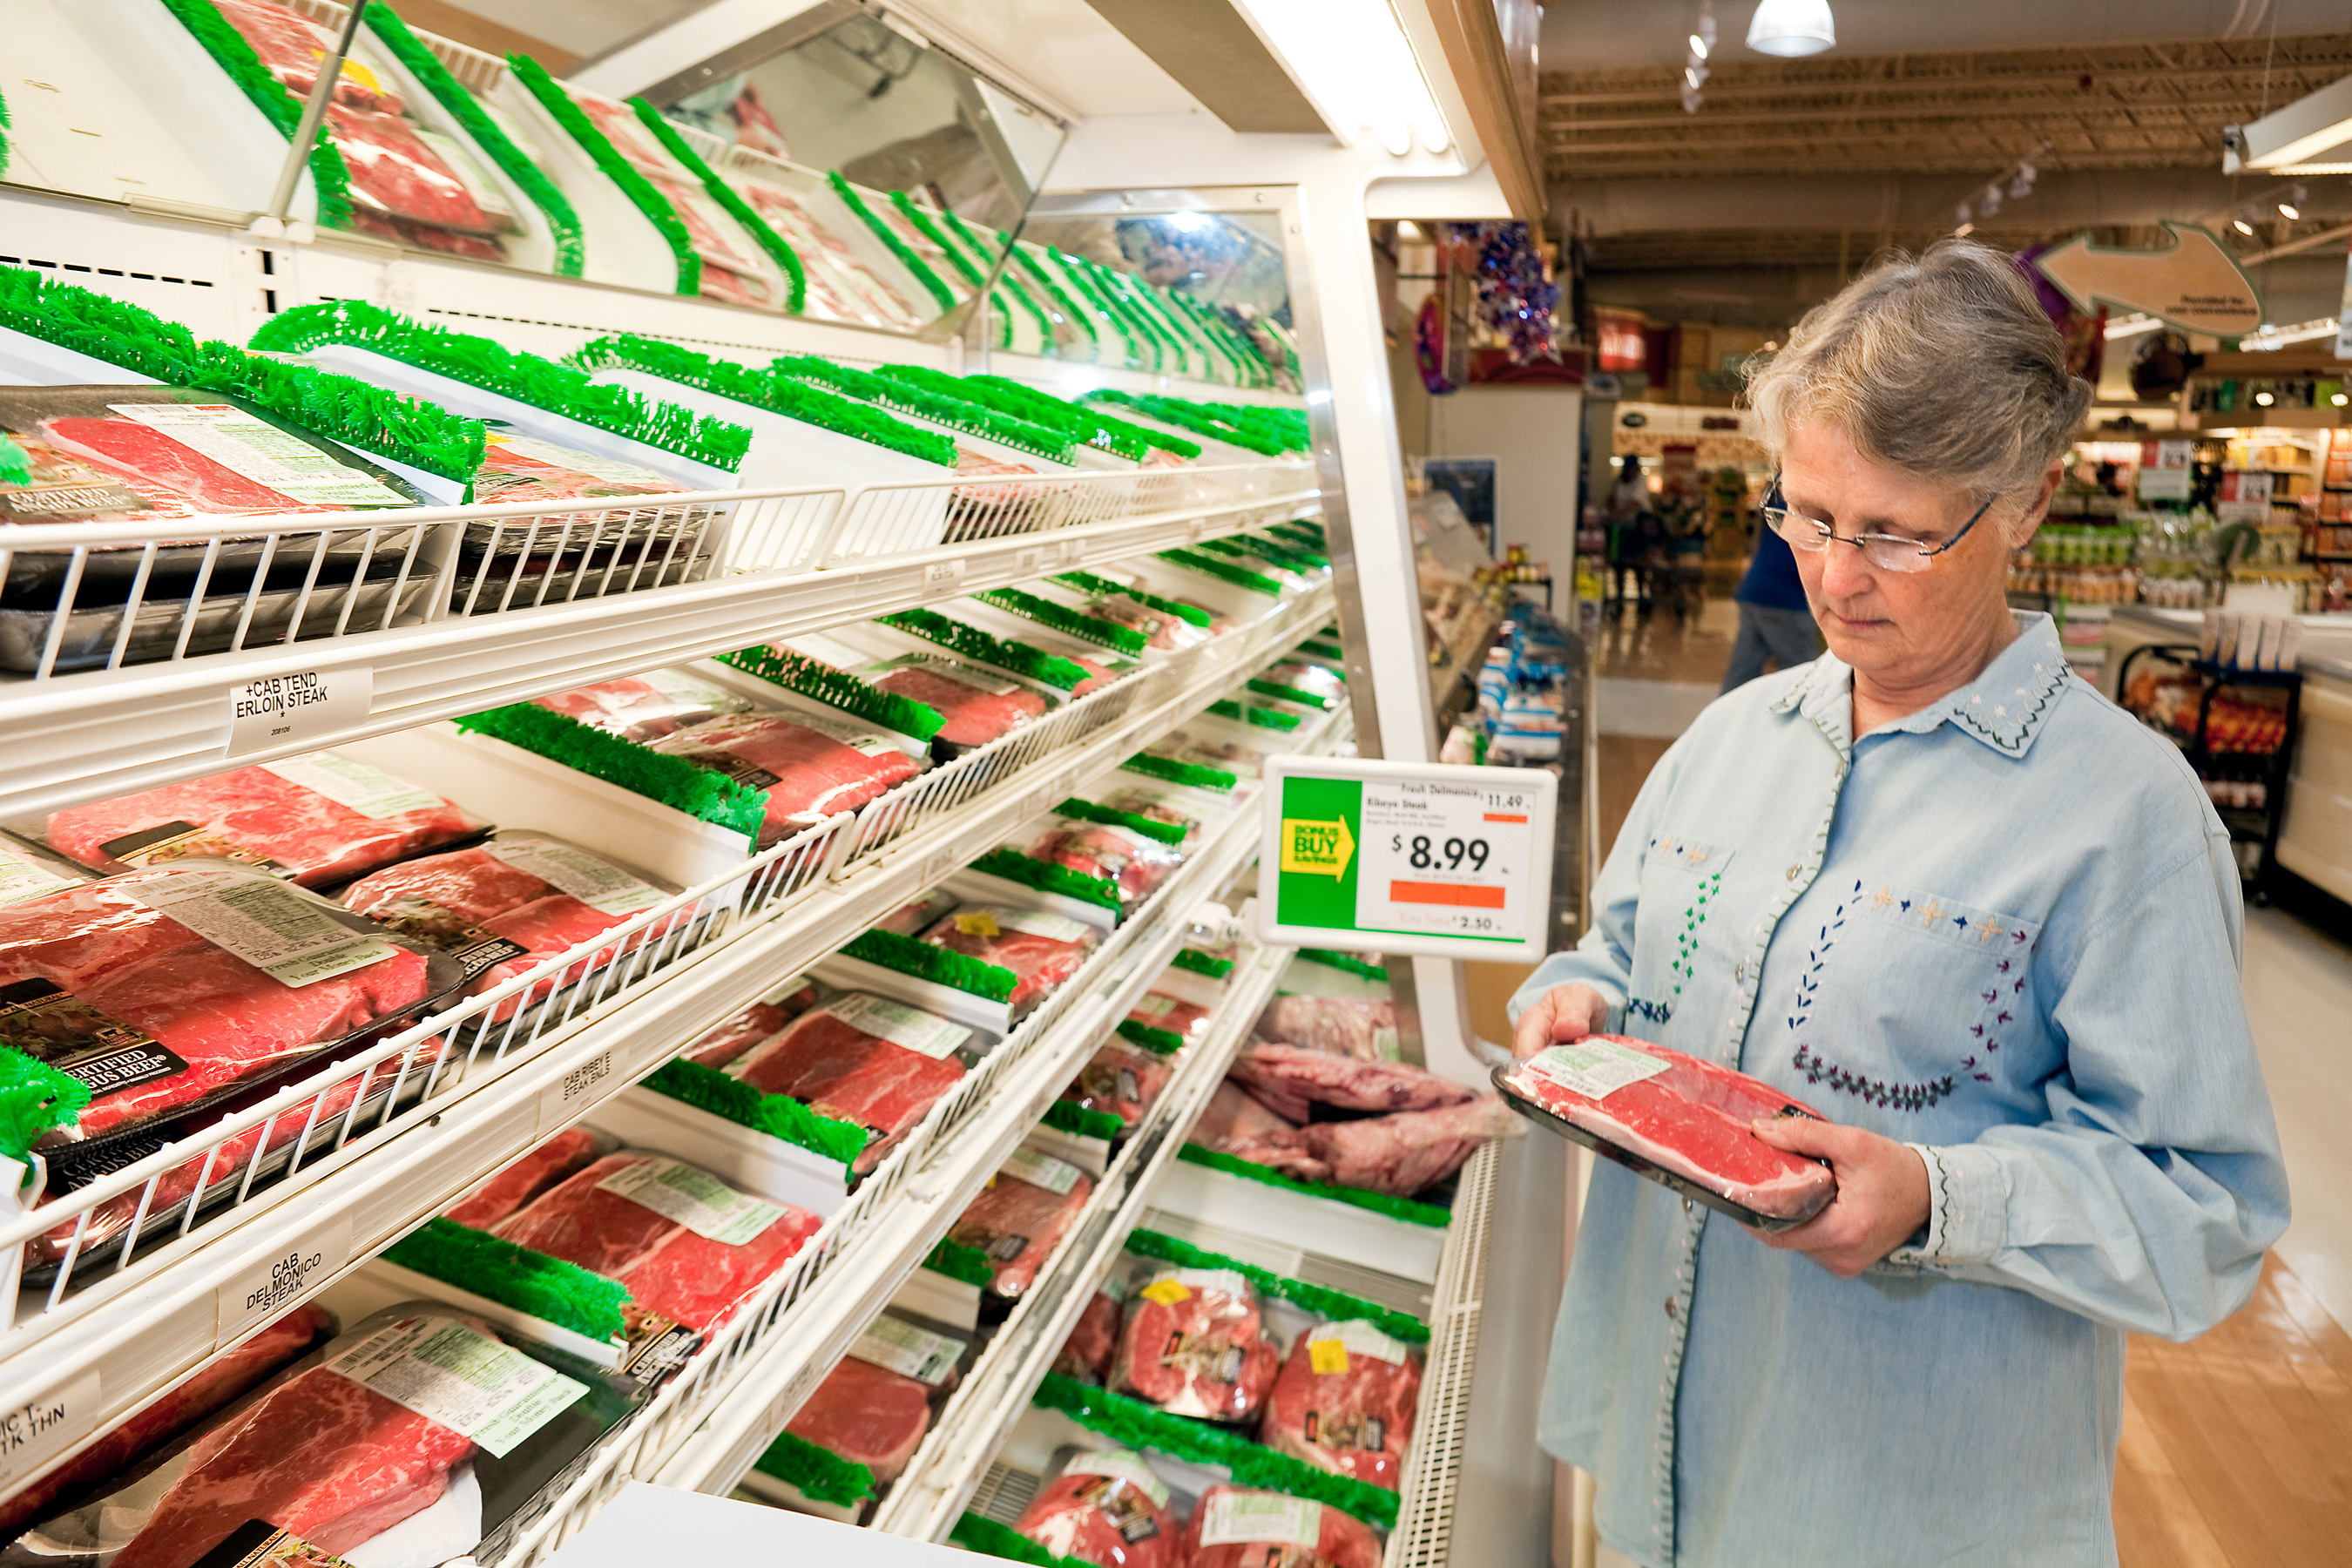 A customer shops for packaged meat at a supermarket